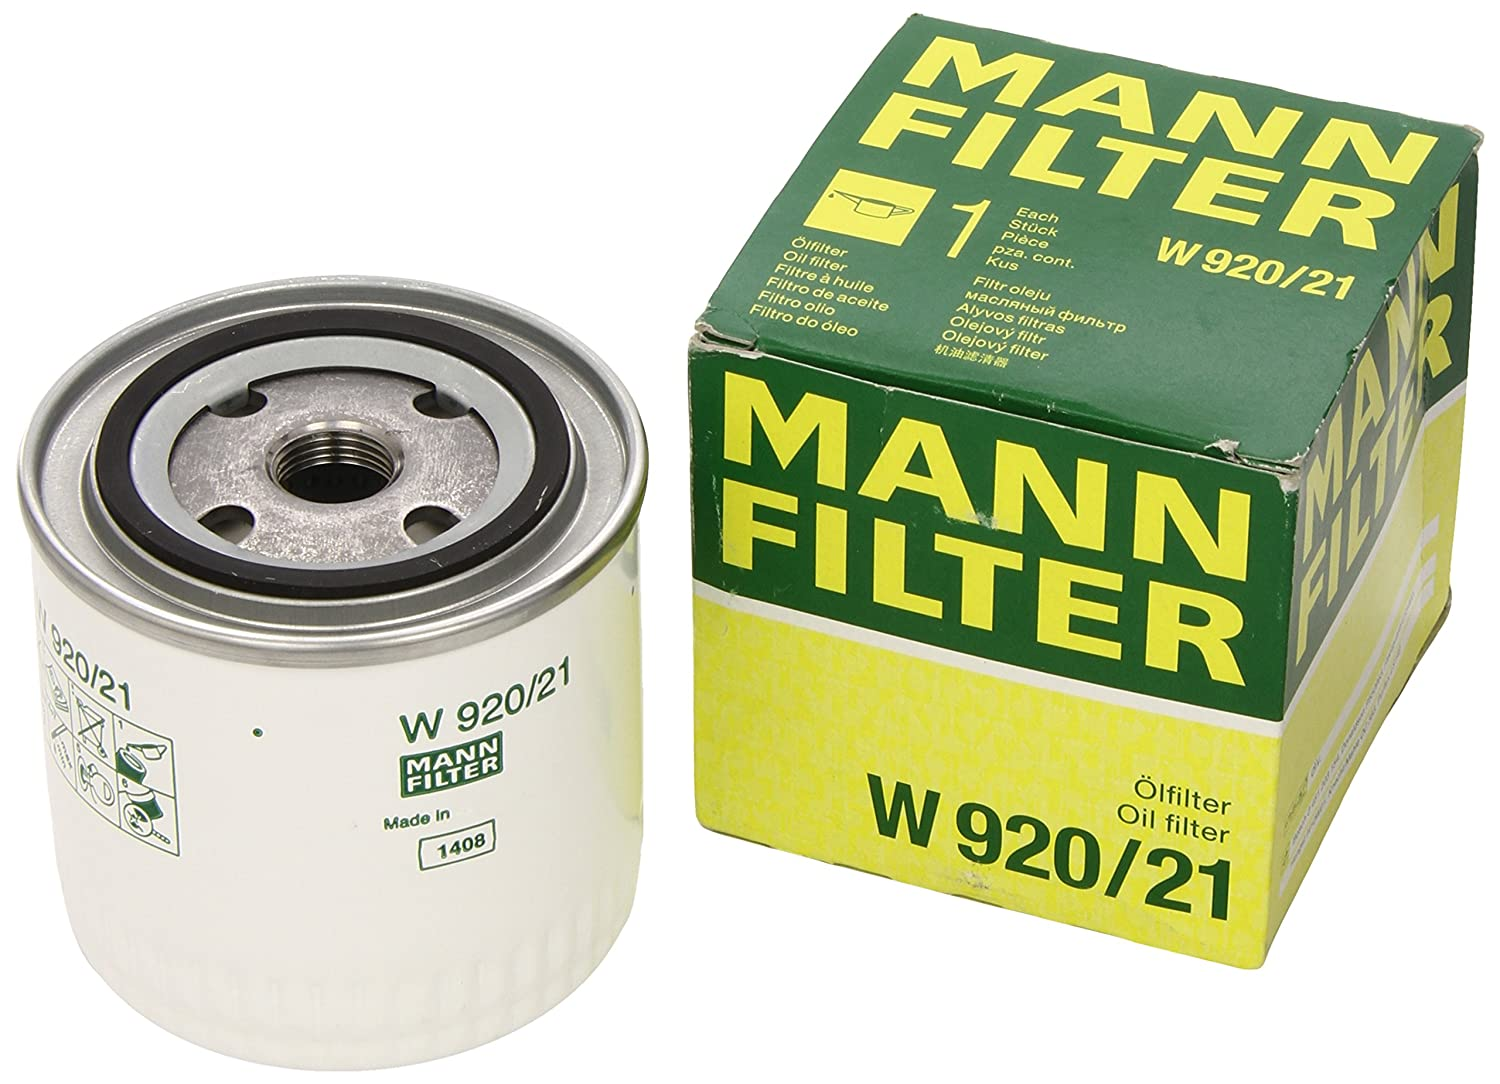 Mann-Filter W 920/21 Spin-on Oil Filter